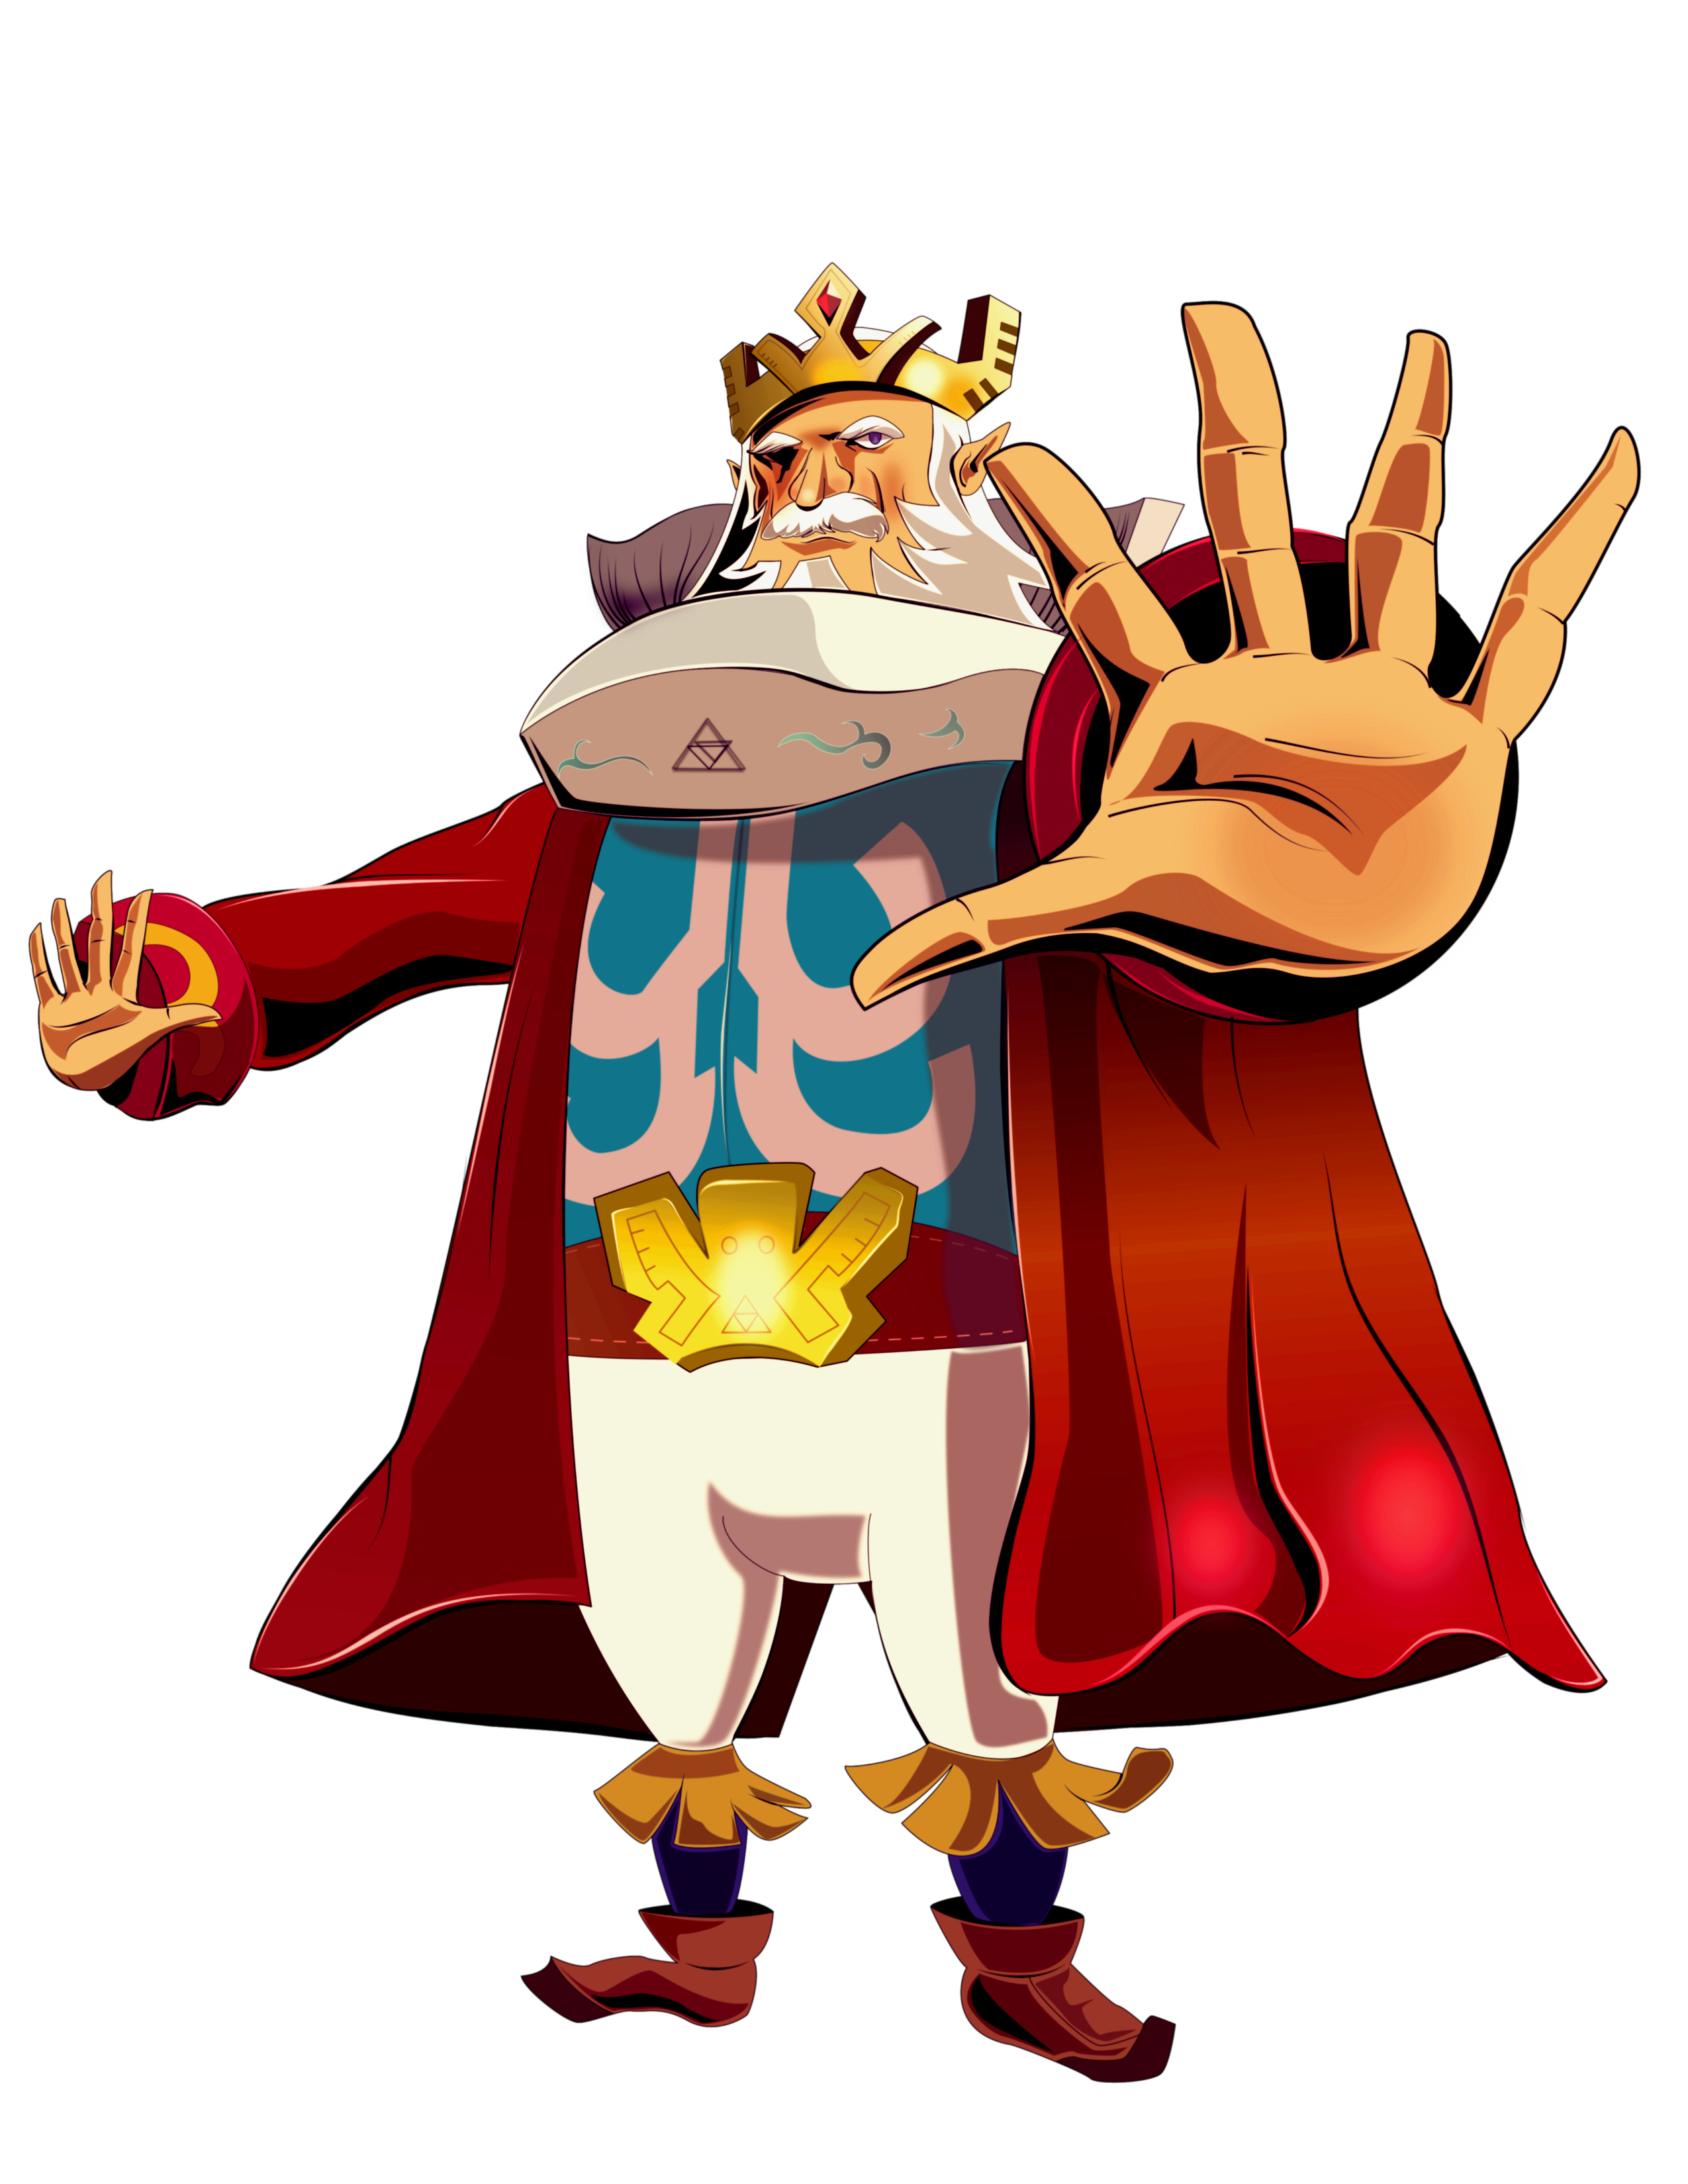 King of Hyrule PNG Image